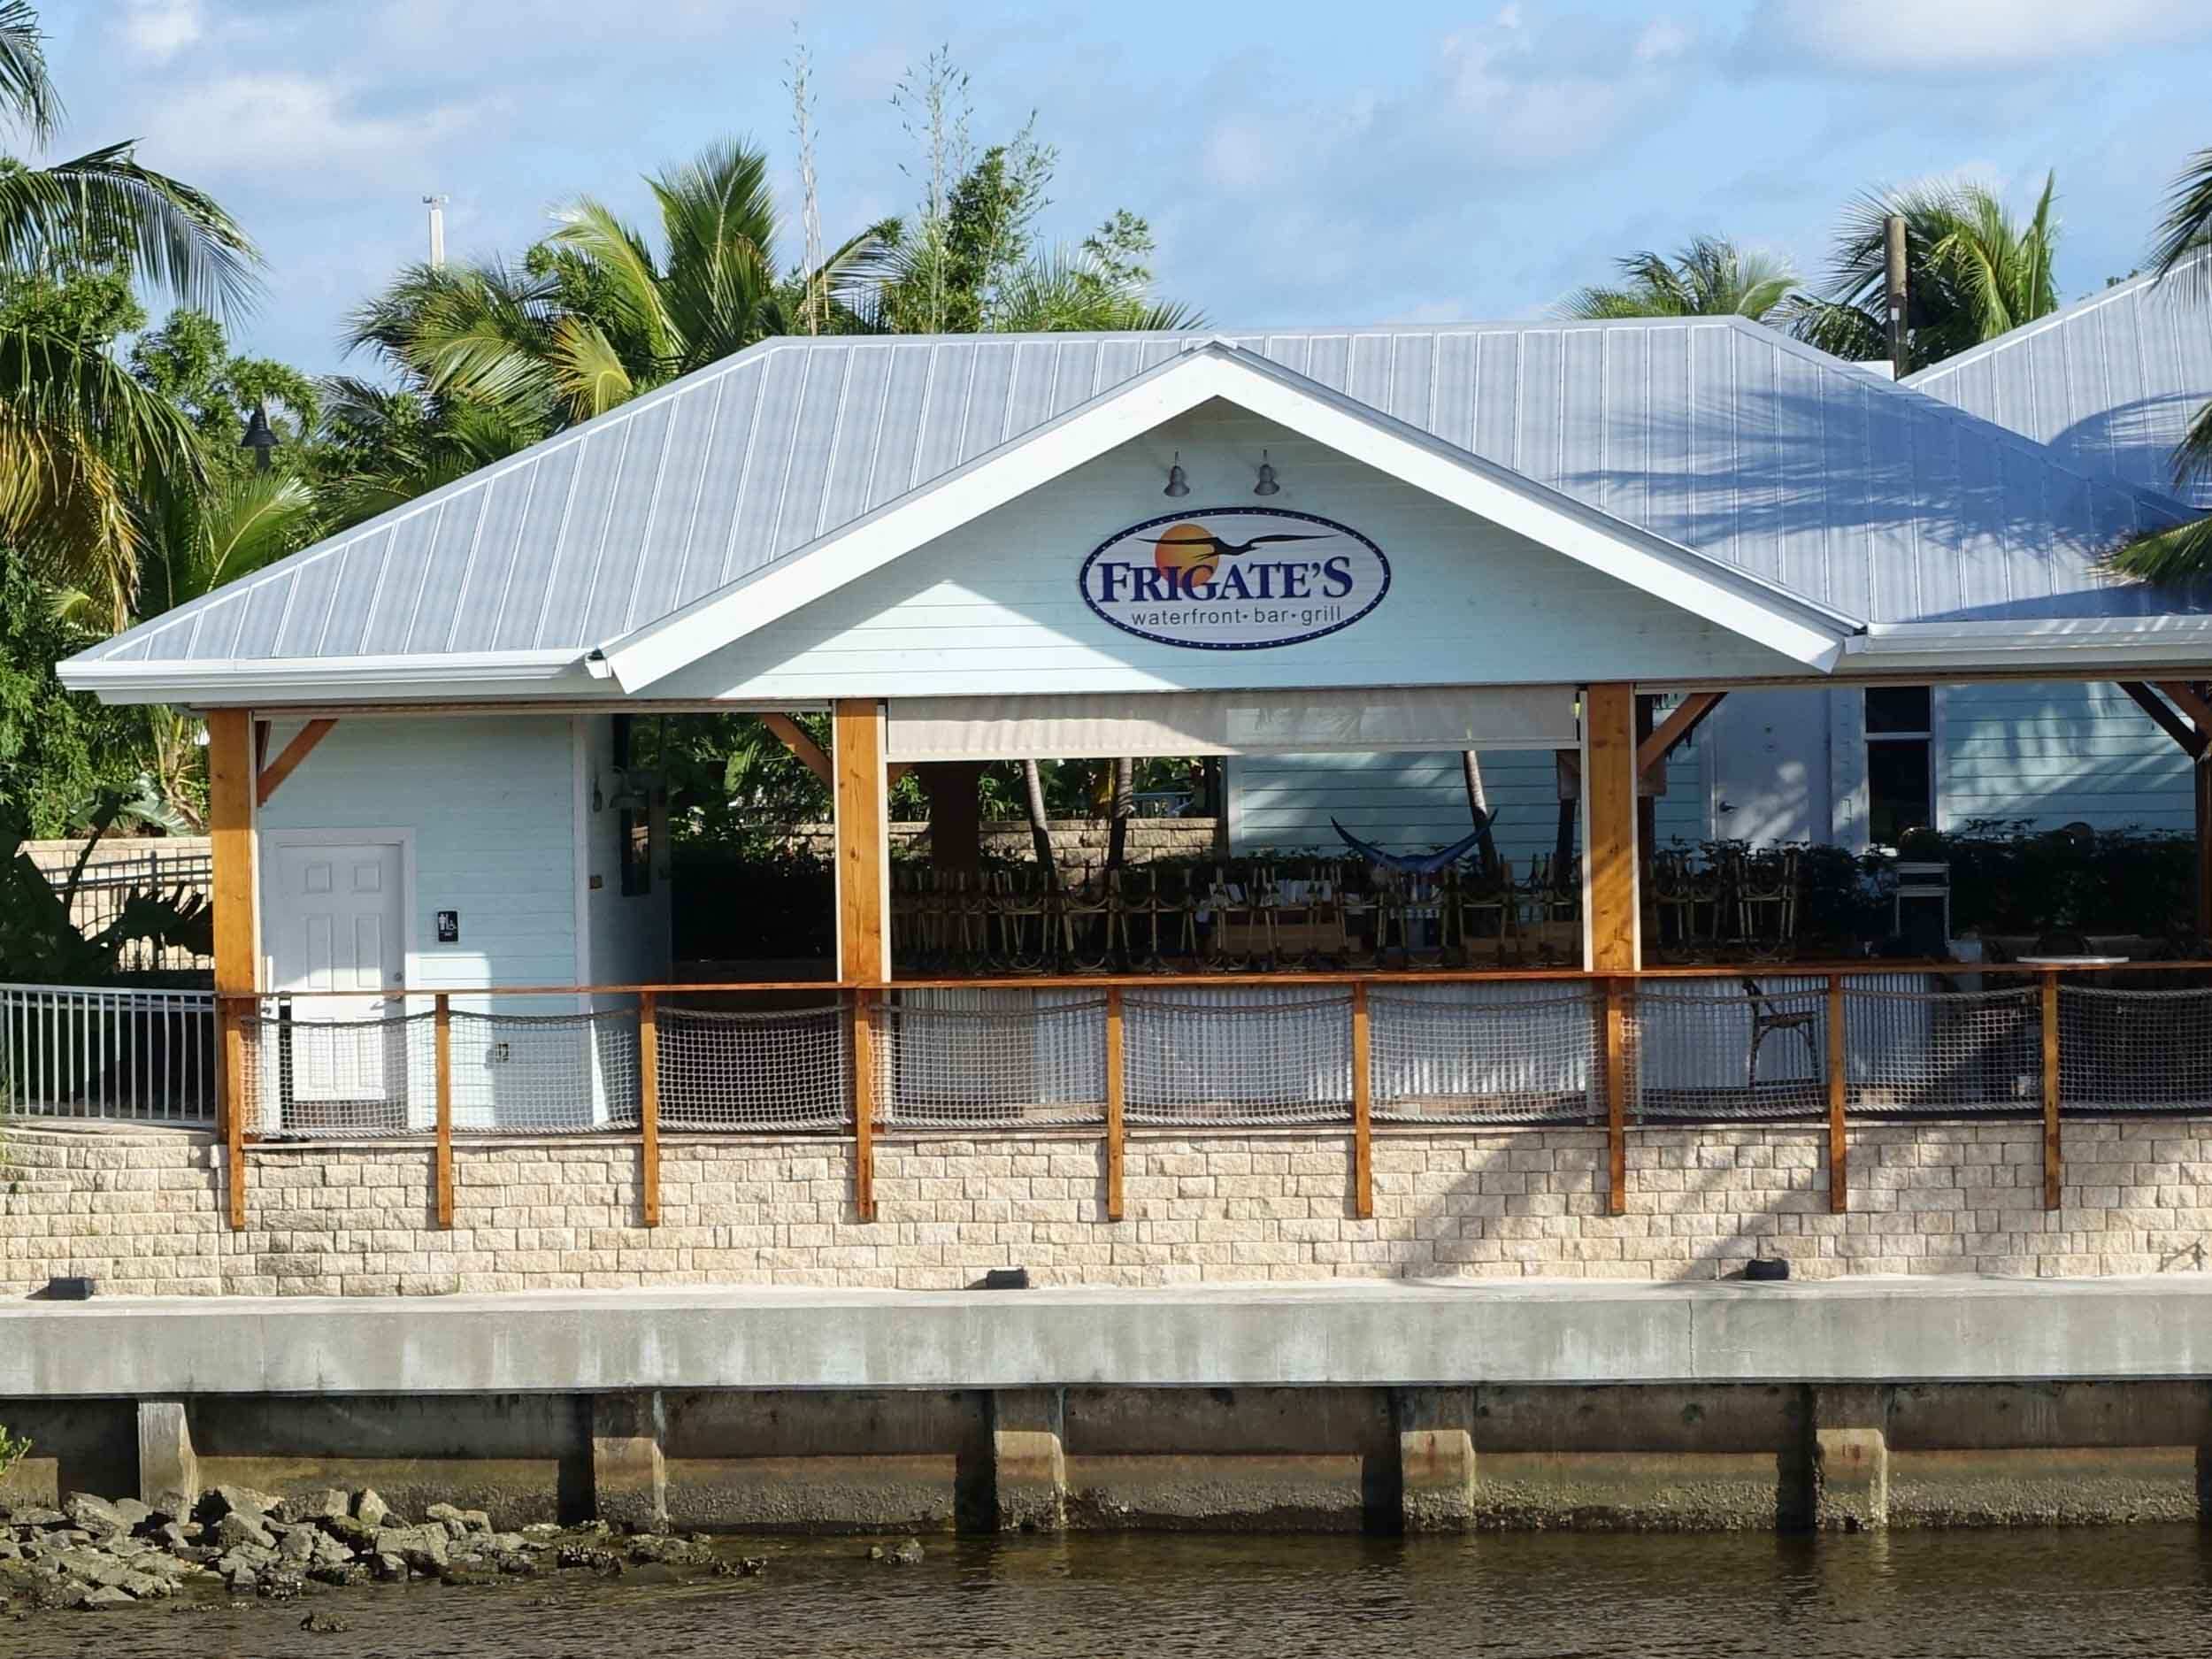 Frigate's Waterfront Bar and Grill